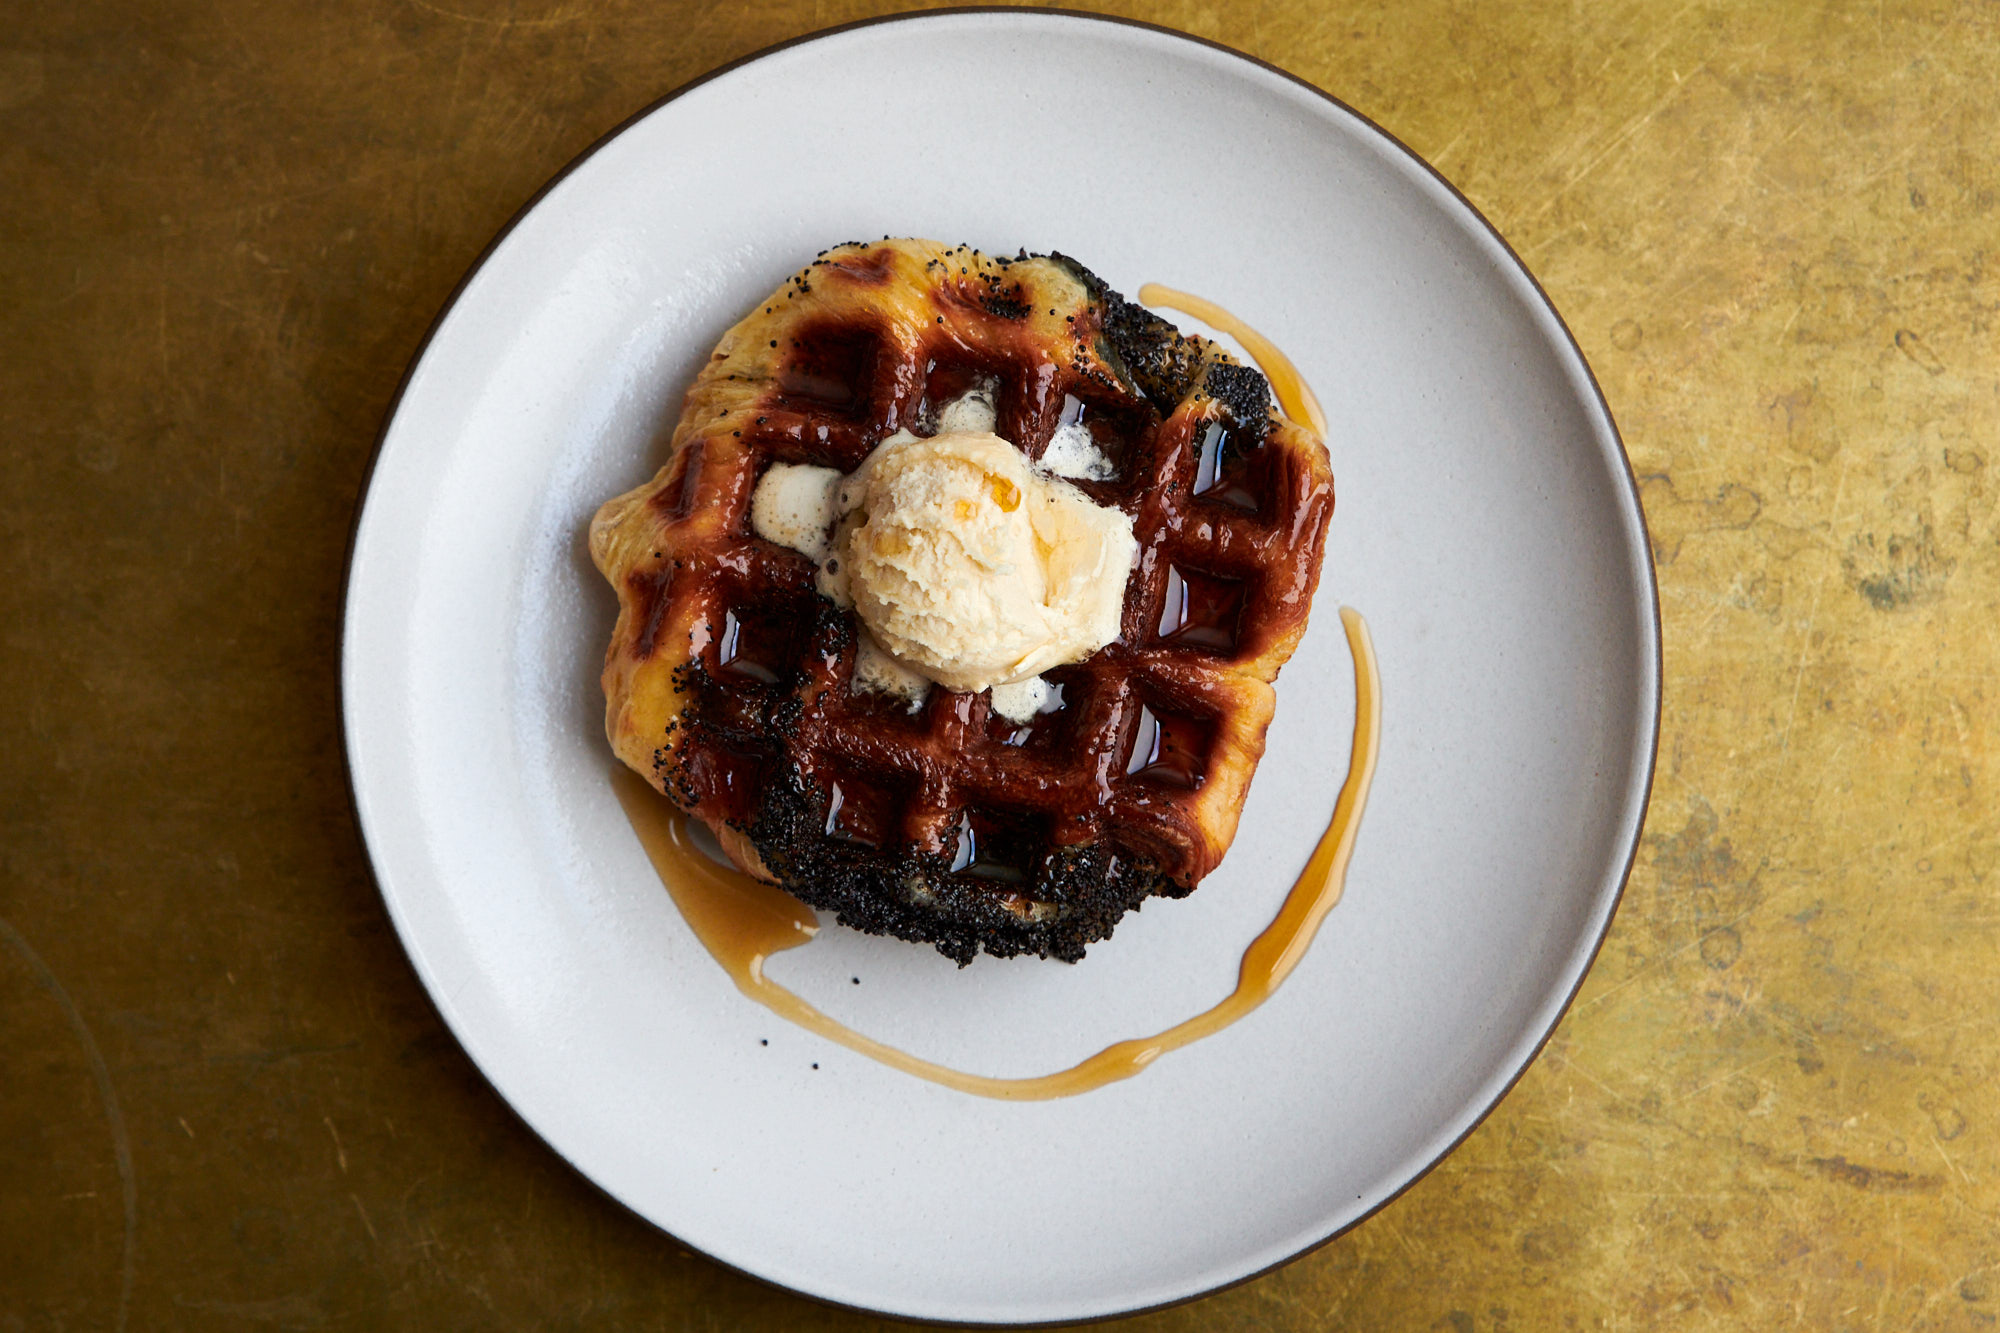 A unevenly shaped, leavened waffle sits on a white plate with a scoop of maple butter on top. A drizzle of maple syrup swipes around its exterior.